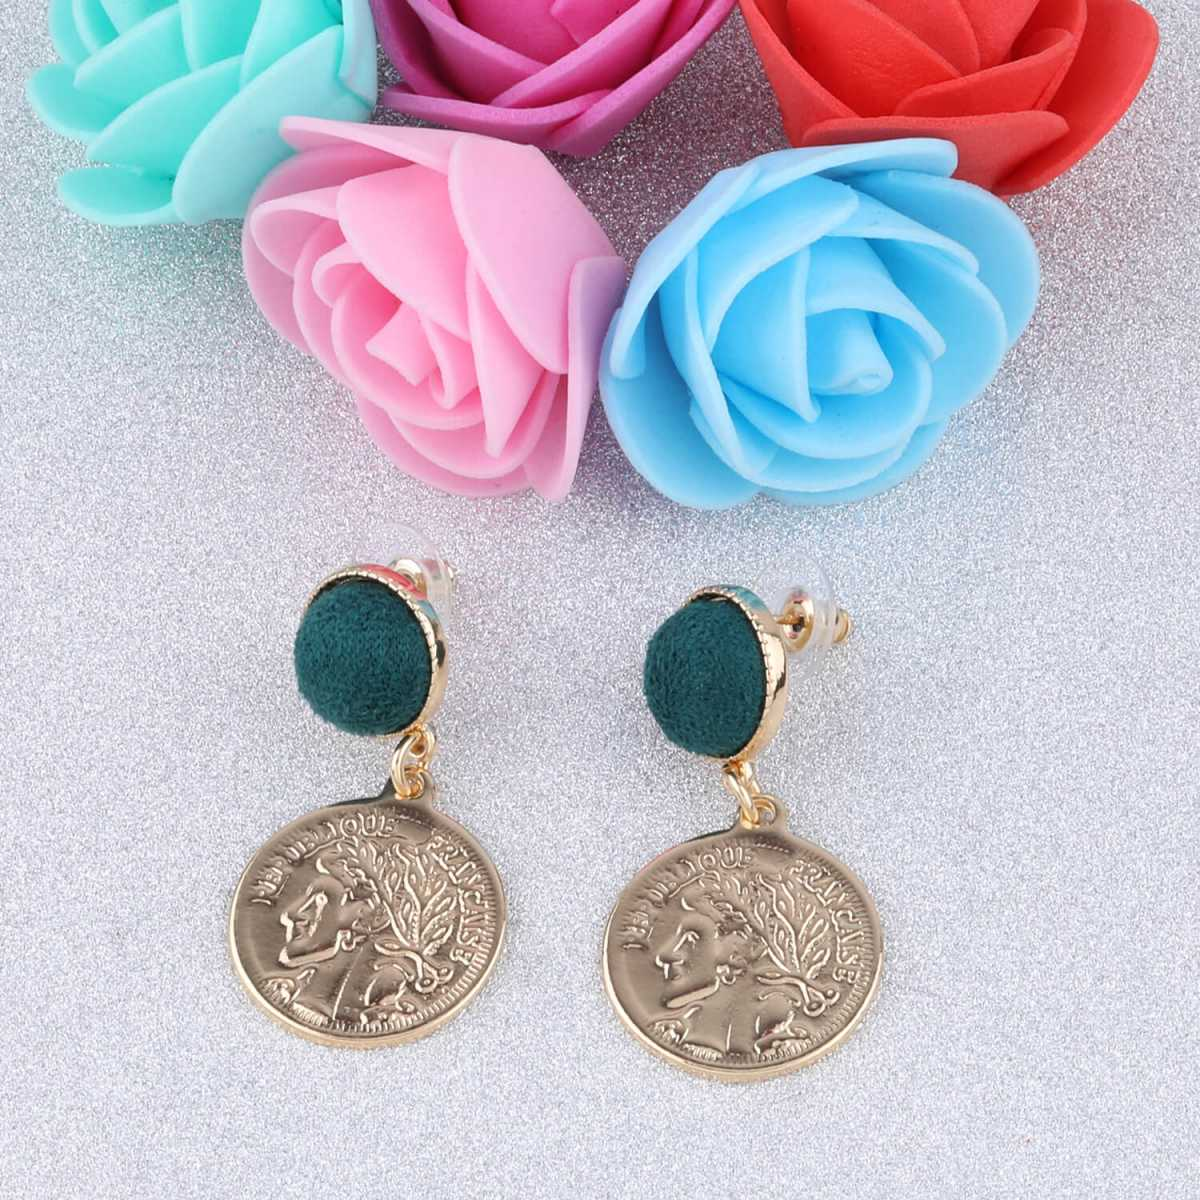 SILVER SHINE Gold Plated Stylish Fancy Look Dangle Earring For Women Girl